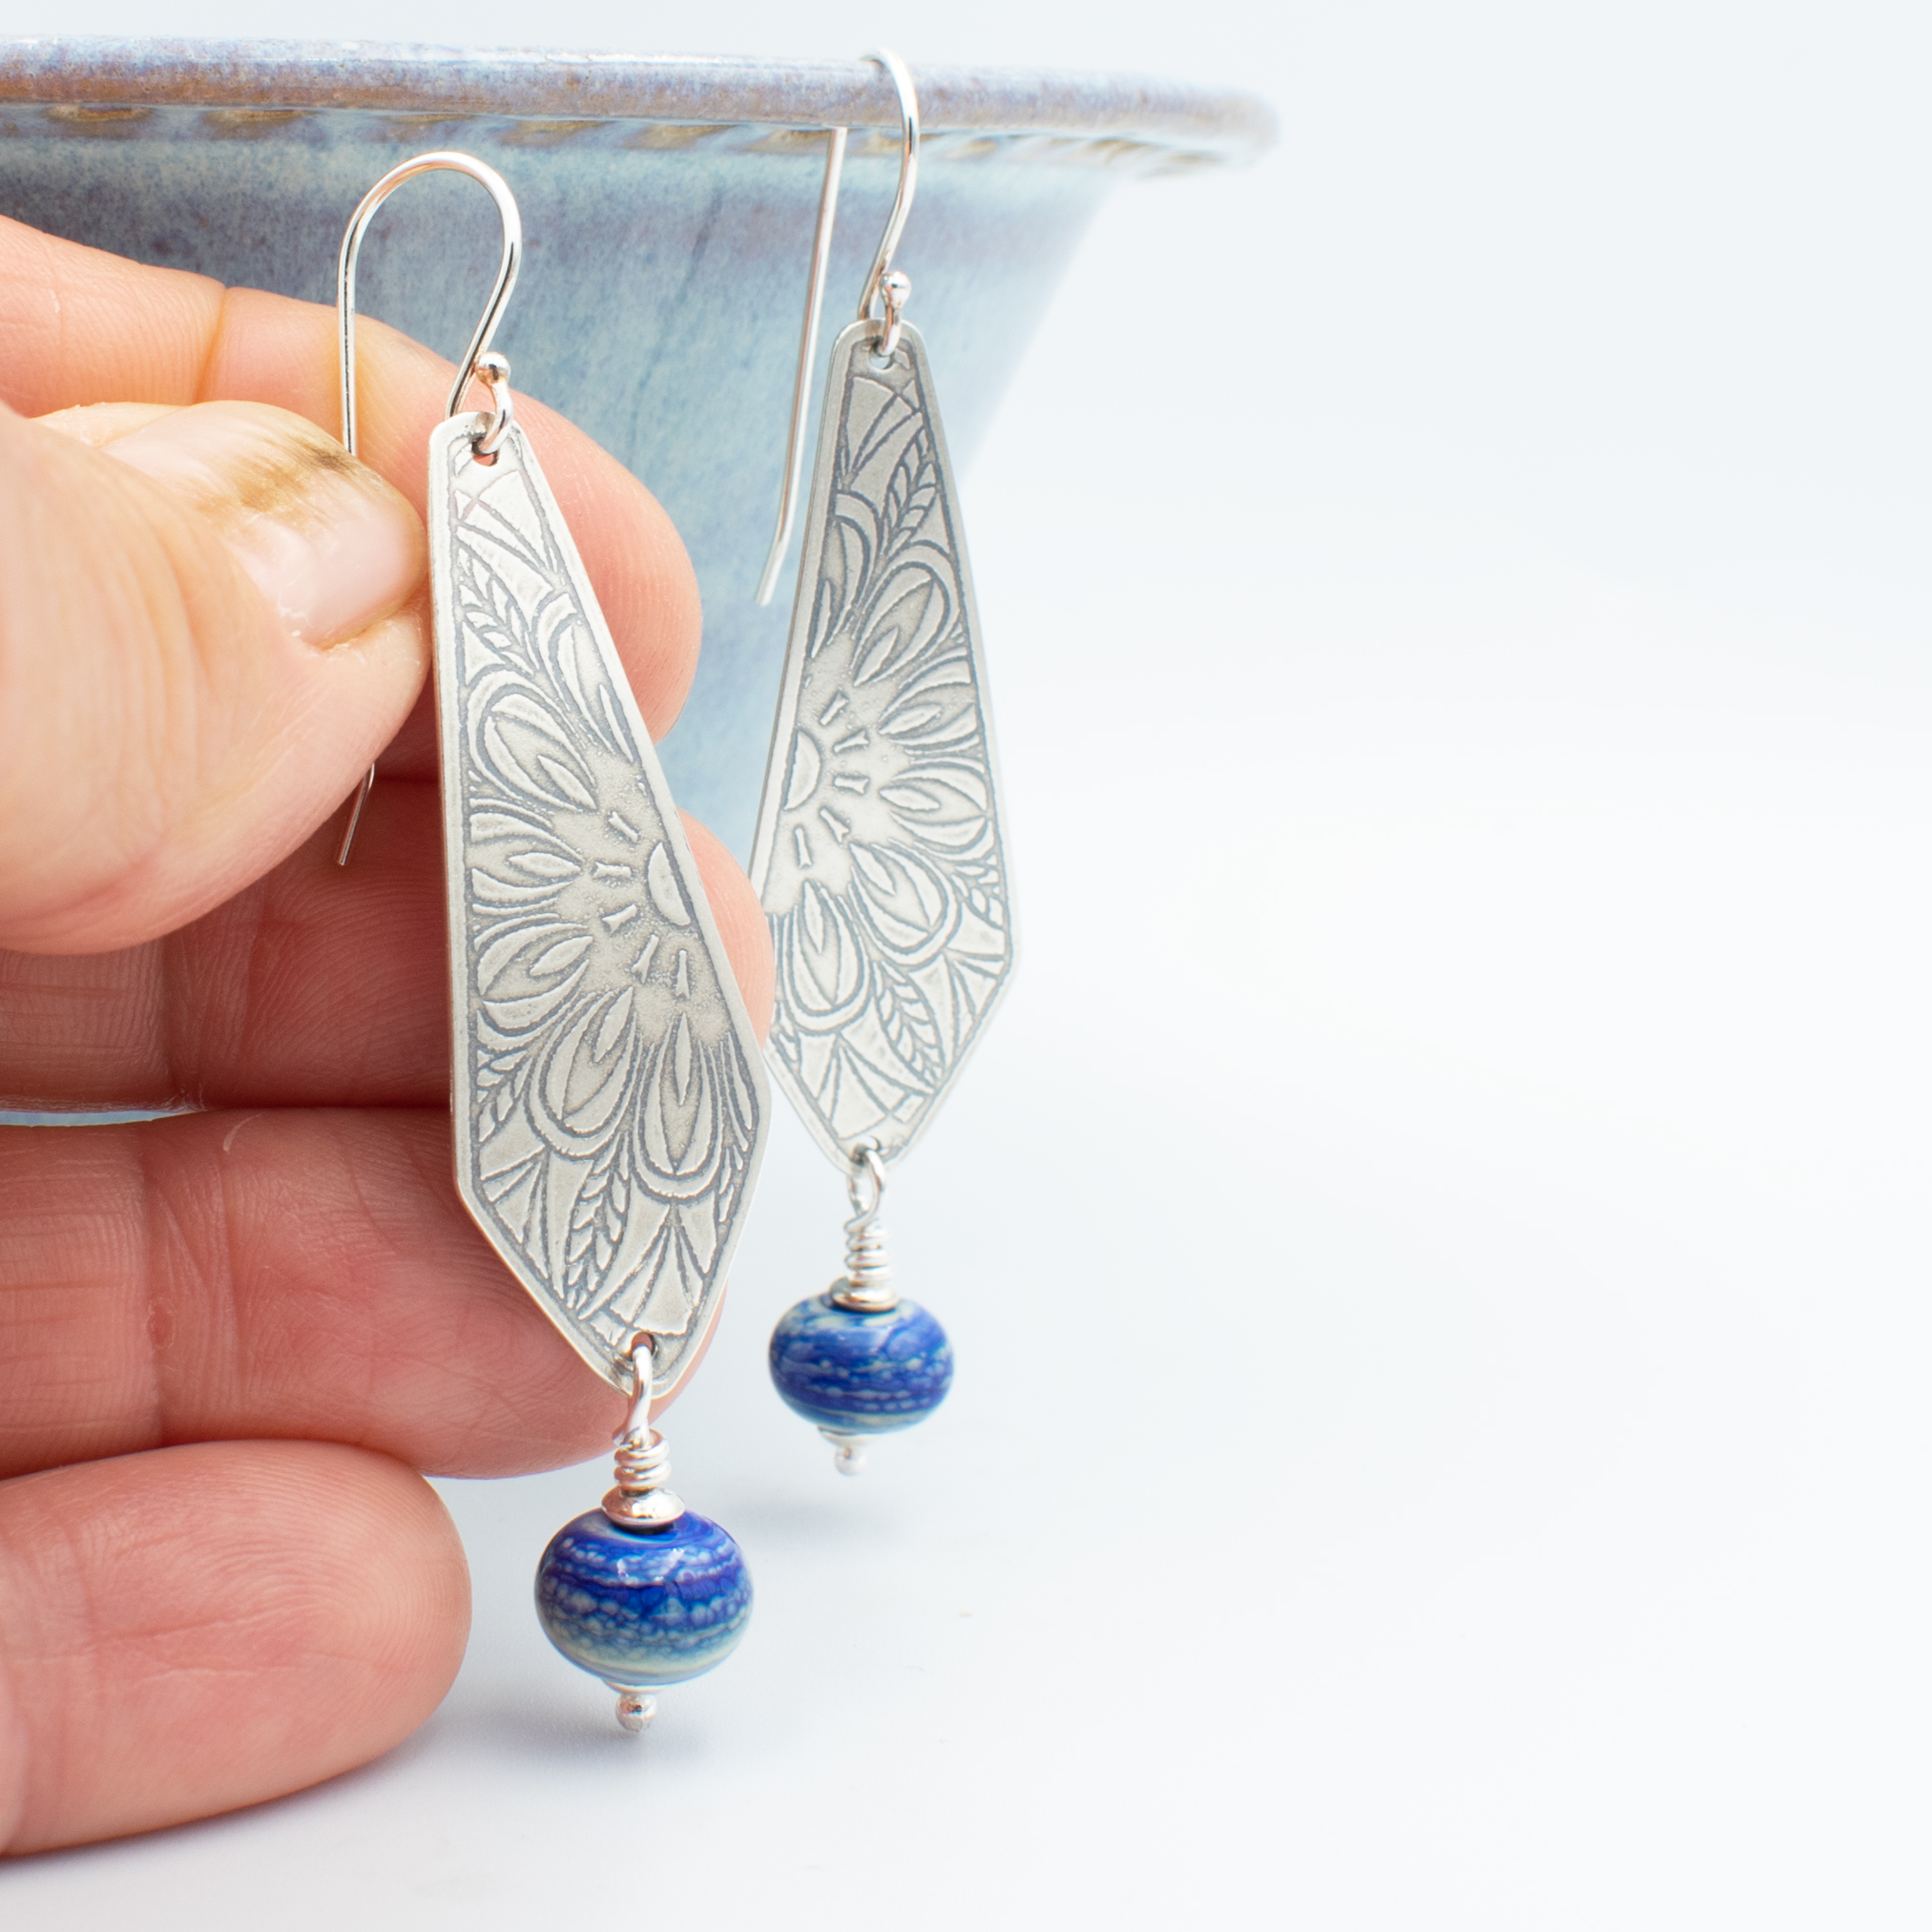 Dutche Delft Blue glass and silver earrings